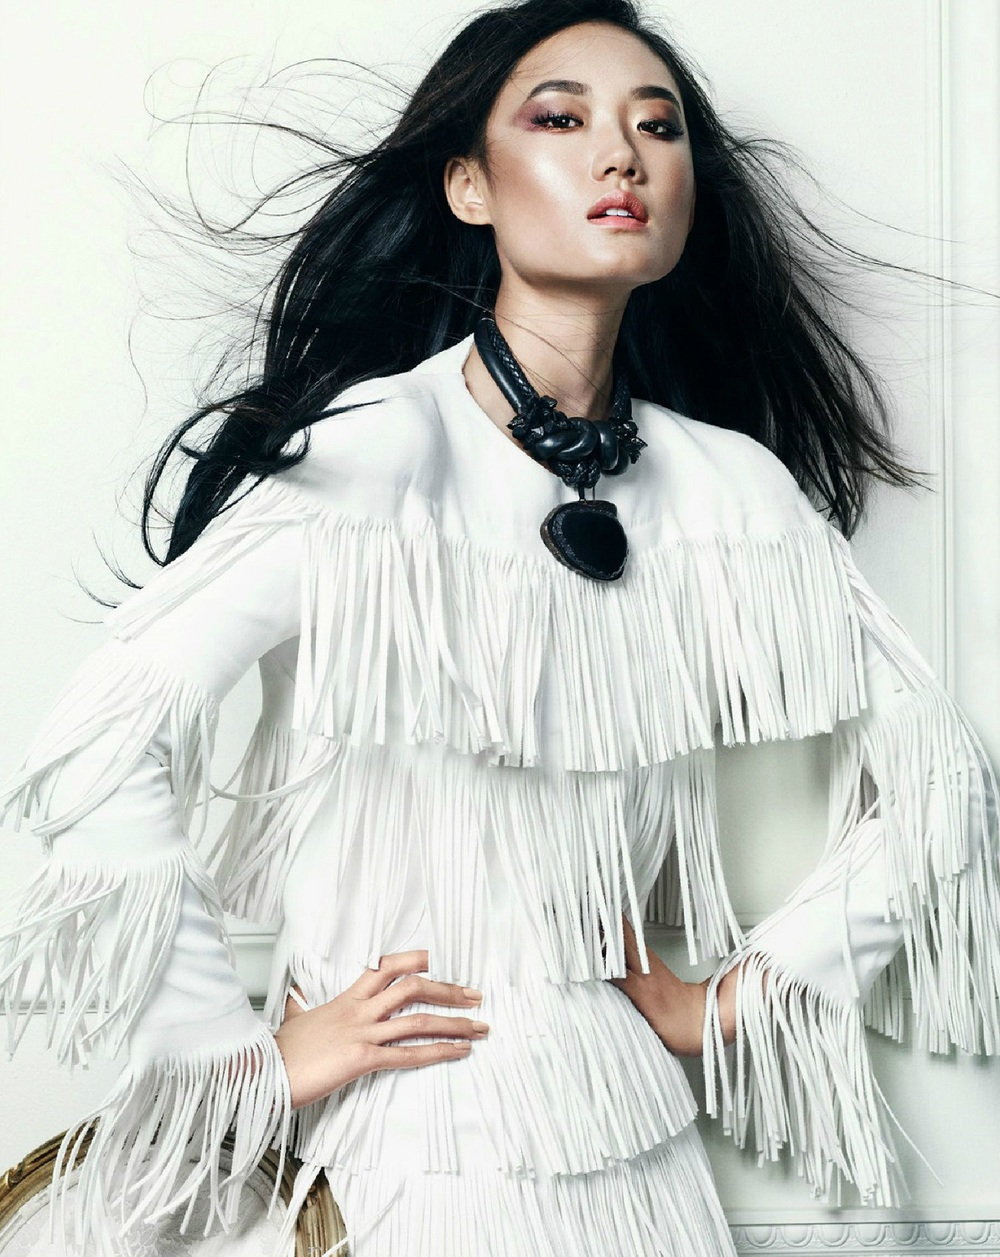 david-slijper-ash-foo-vogue-china-august-2015_2.jpg